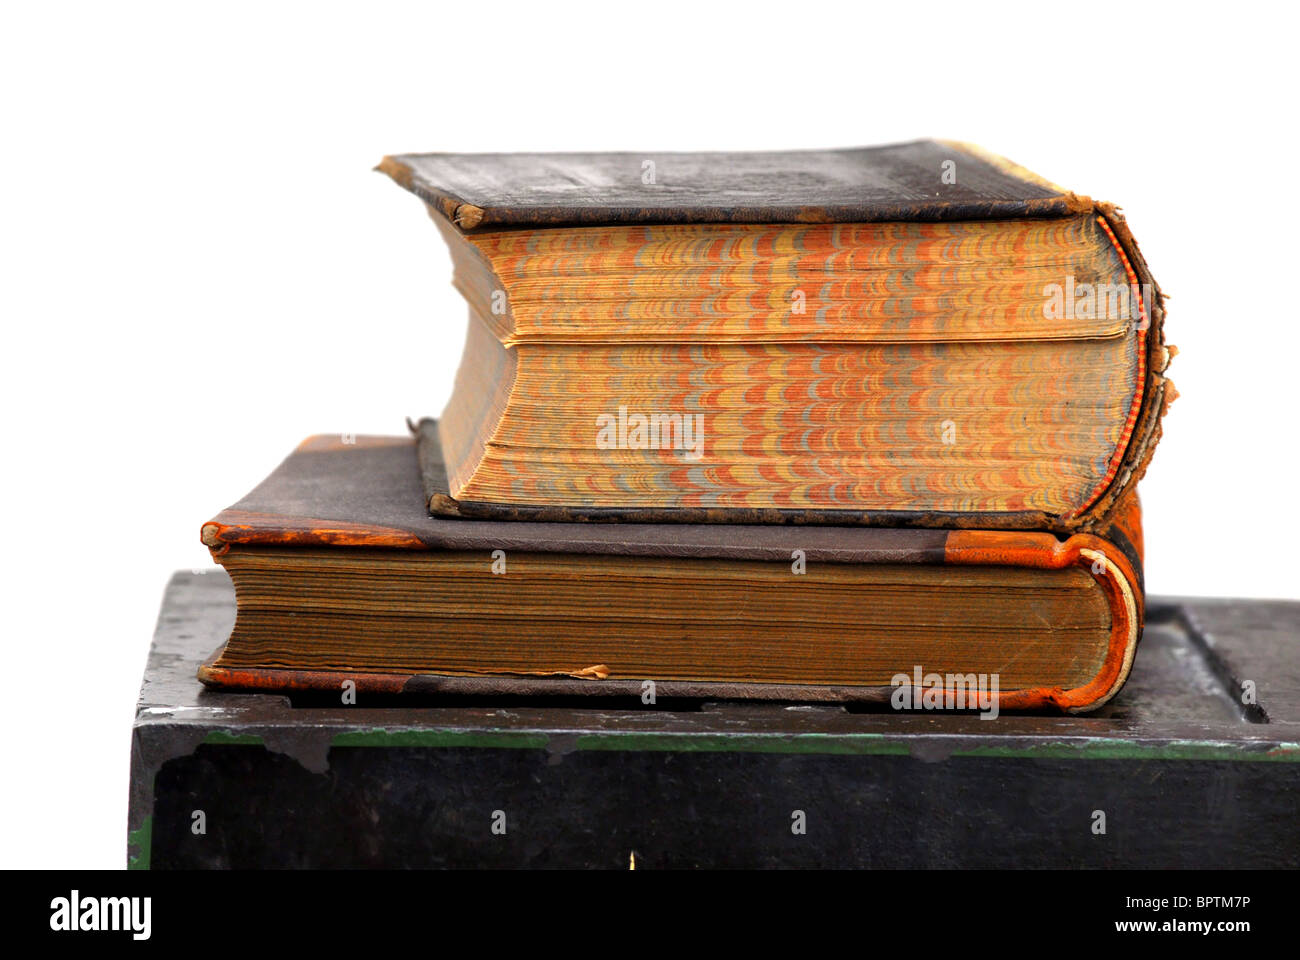 Antique books placed on an old chest - Stock Image